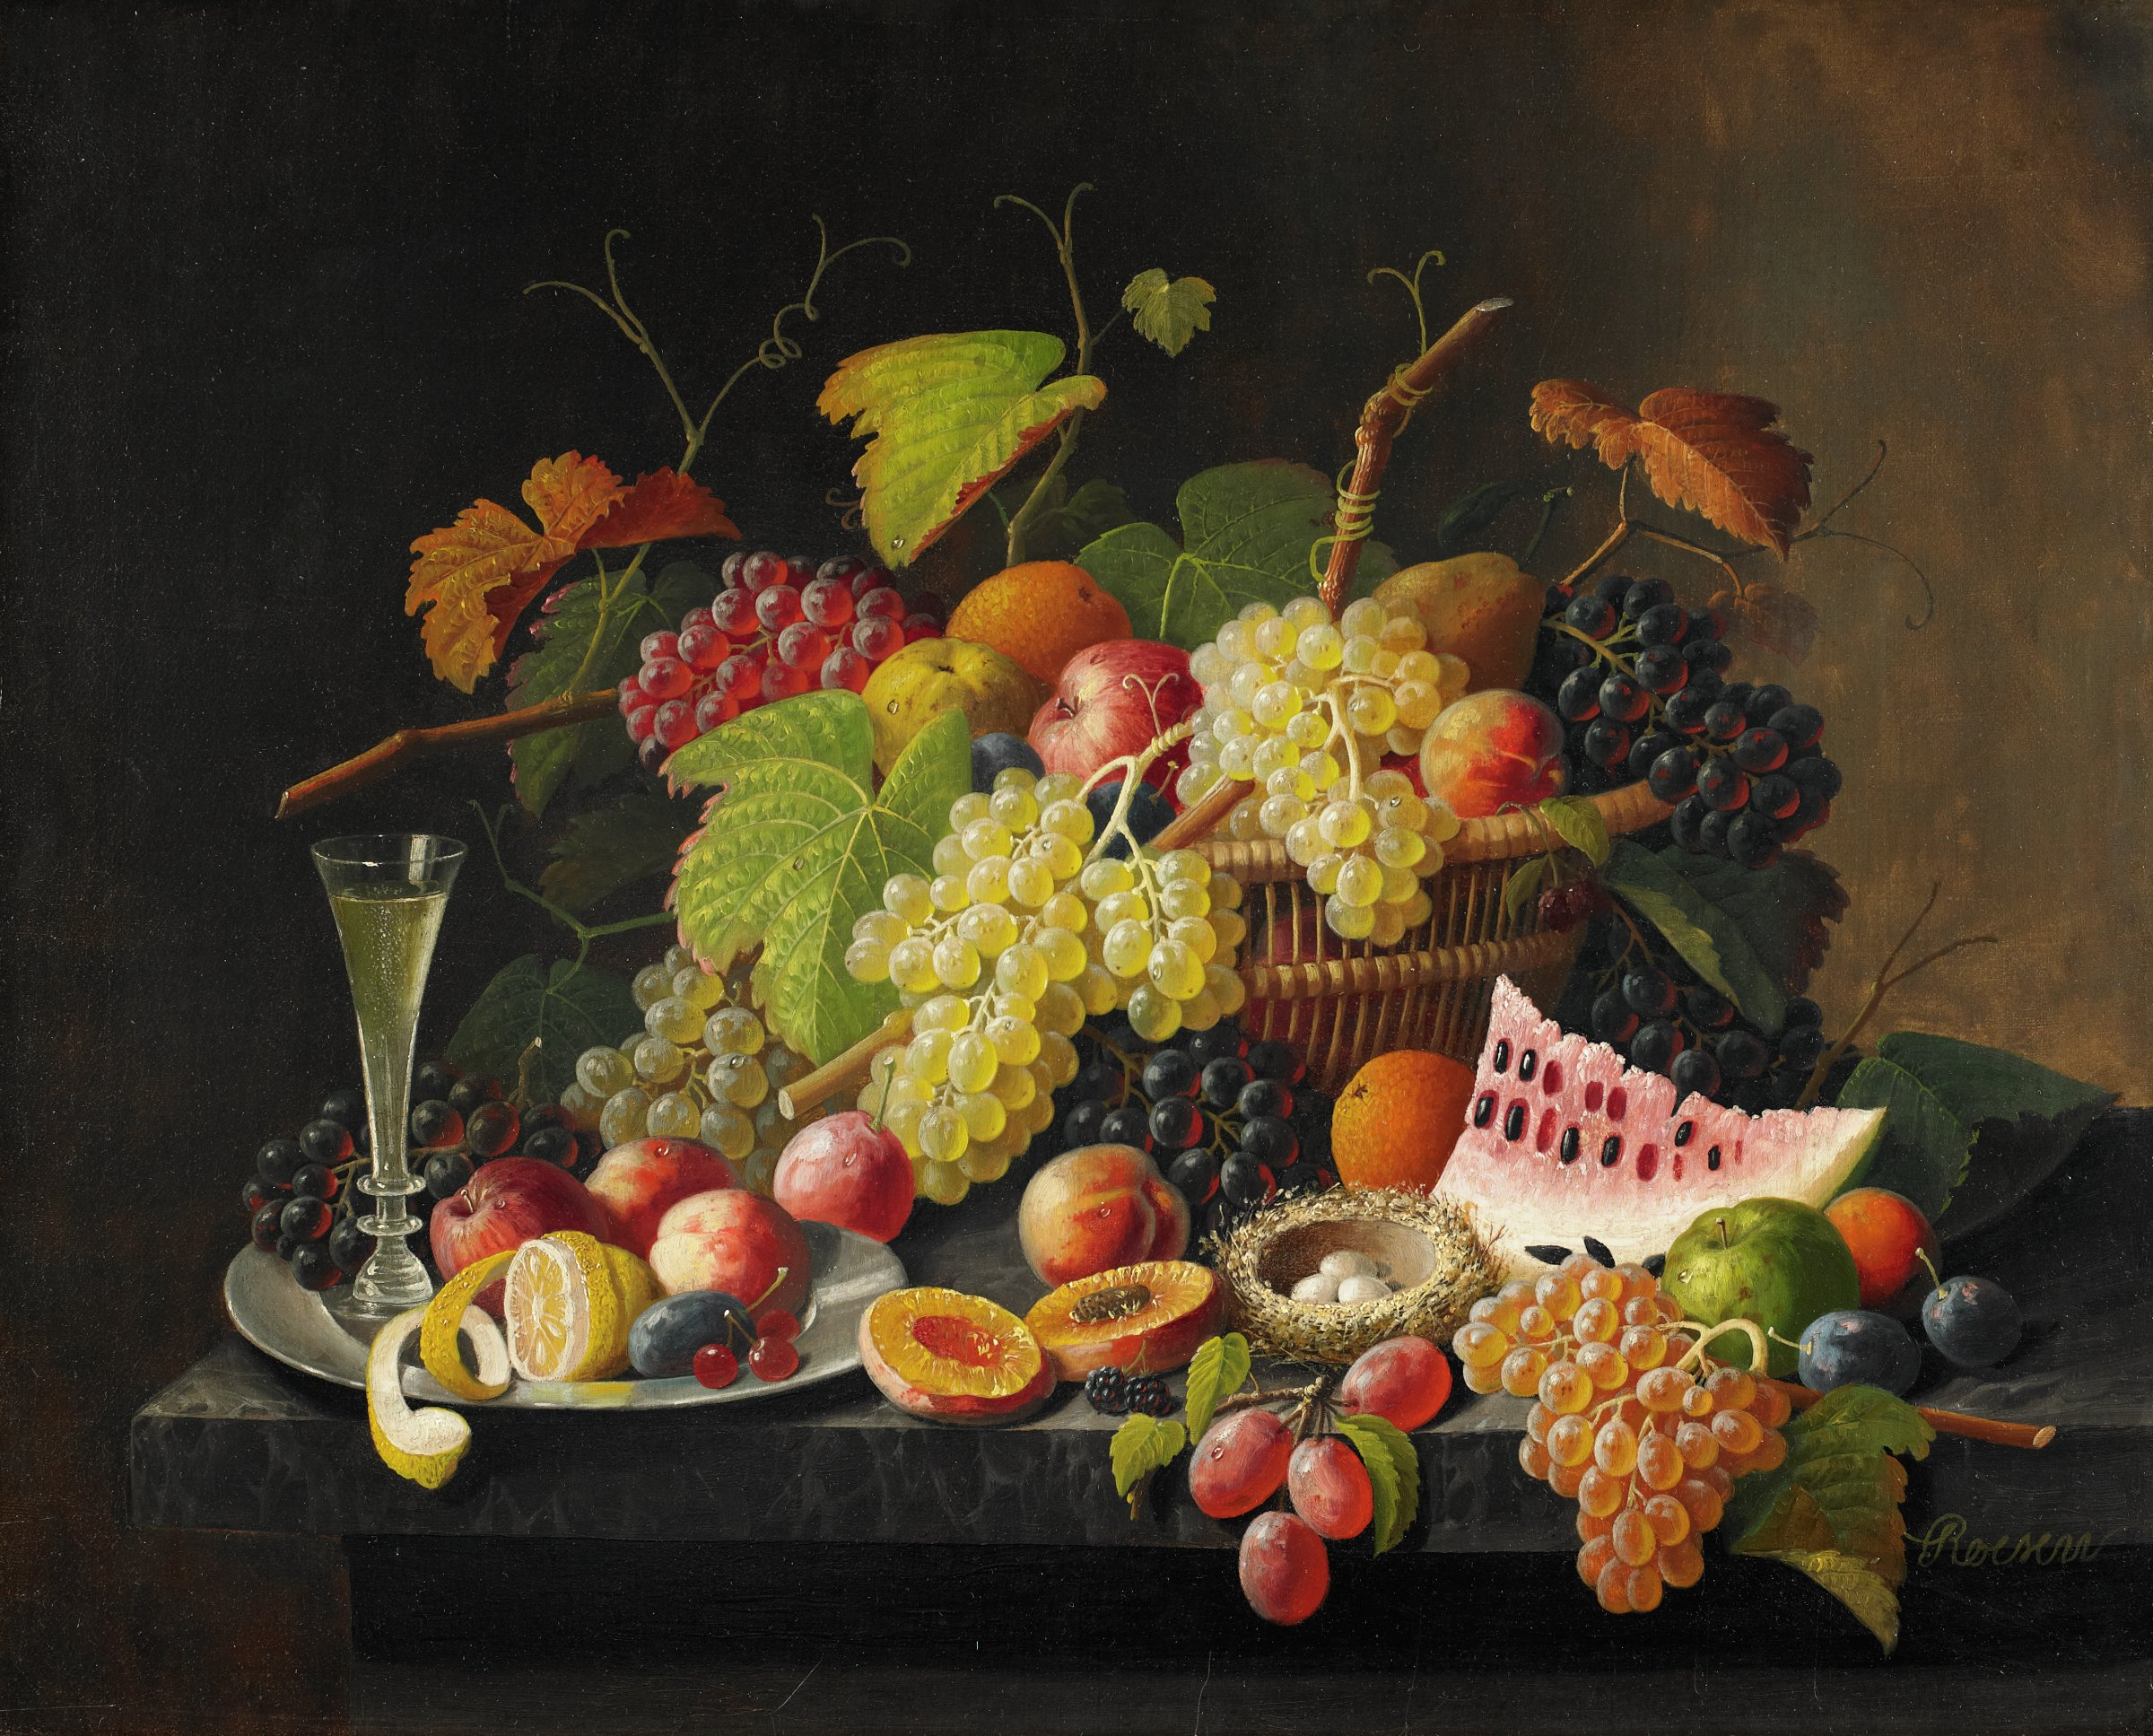 """This painting represents a basket of fruit sitting on a marble tabletop. Within the basket are grapes with grape leaves and vines, apples, peaches, an orange, and a pear. Spilling from the basket onto the tabletop are grapes, peaches, plums, apples, oranges, and a piece of cut watermelon. Amid the tabletop fruit is a bird's nest containing three eggs. There is also a silver plate on the tabletop, and on the silver plate are a filled champagne flute and a peeled lemon, as well as grapes, apples, peaches, a plum, and two currants. The artist has signed the painting """"Roesen"""" in the lower right corner by extending a grape vine."""